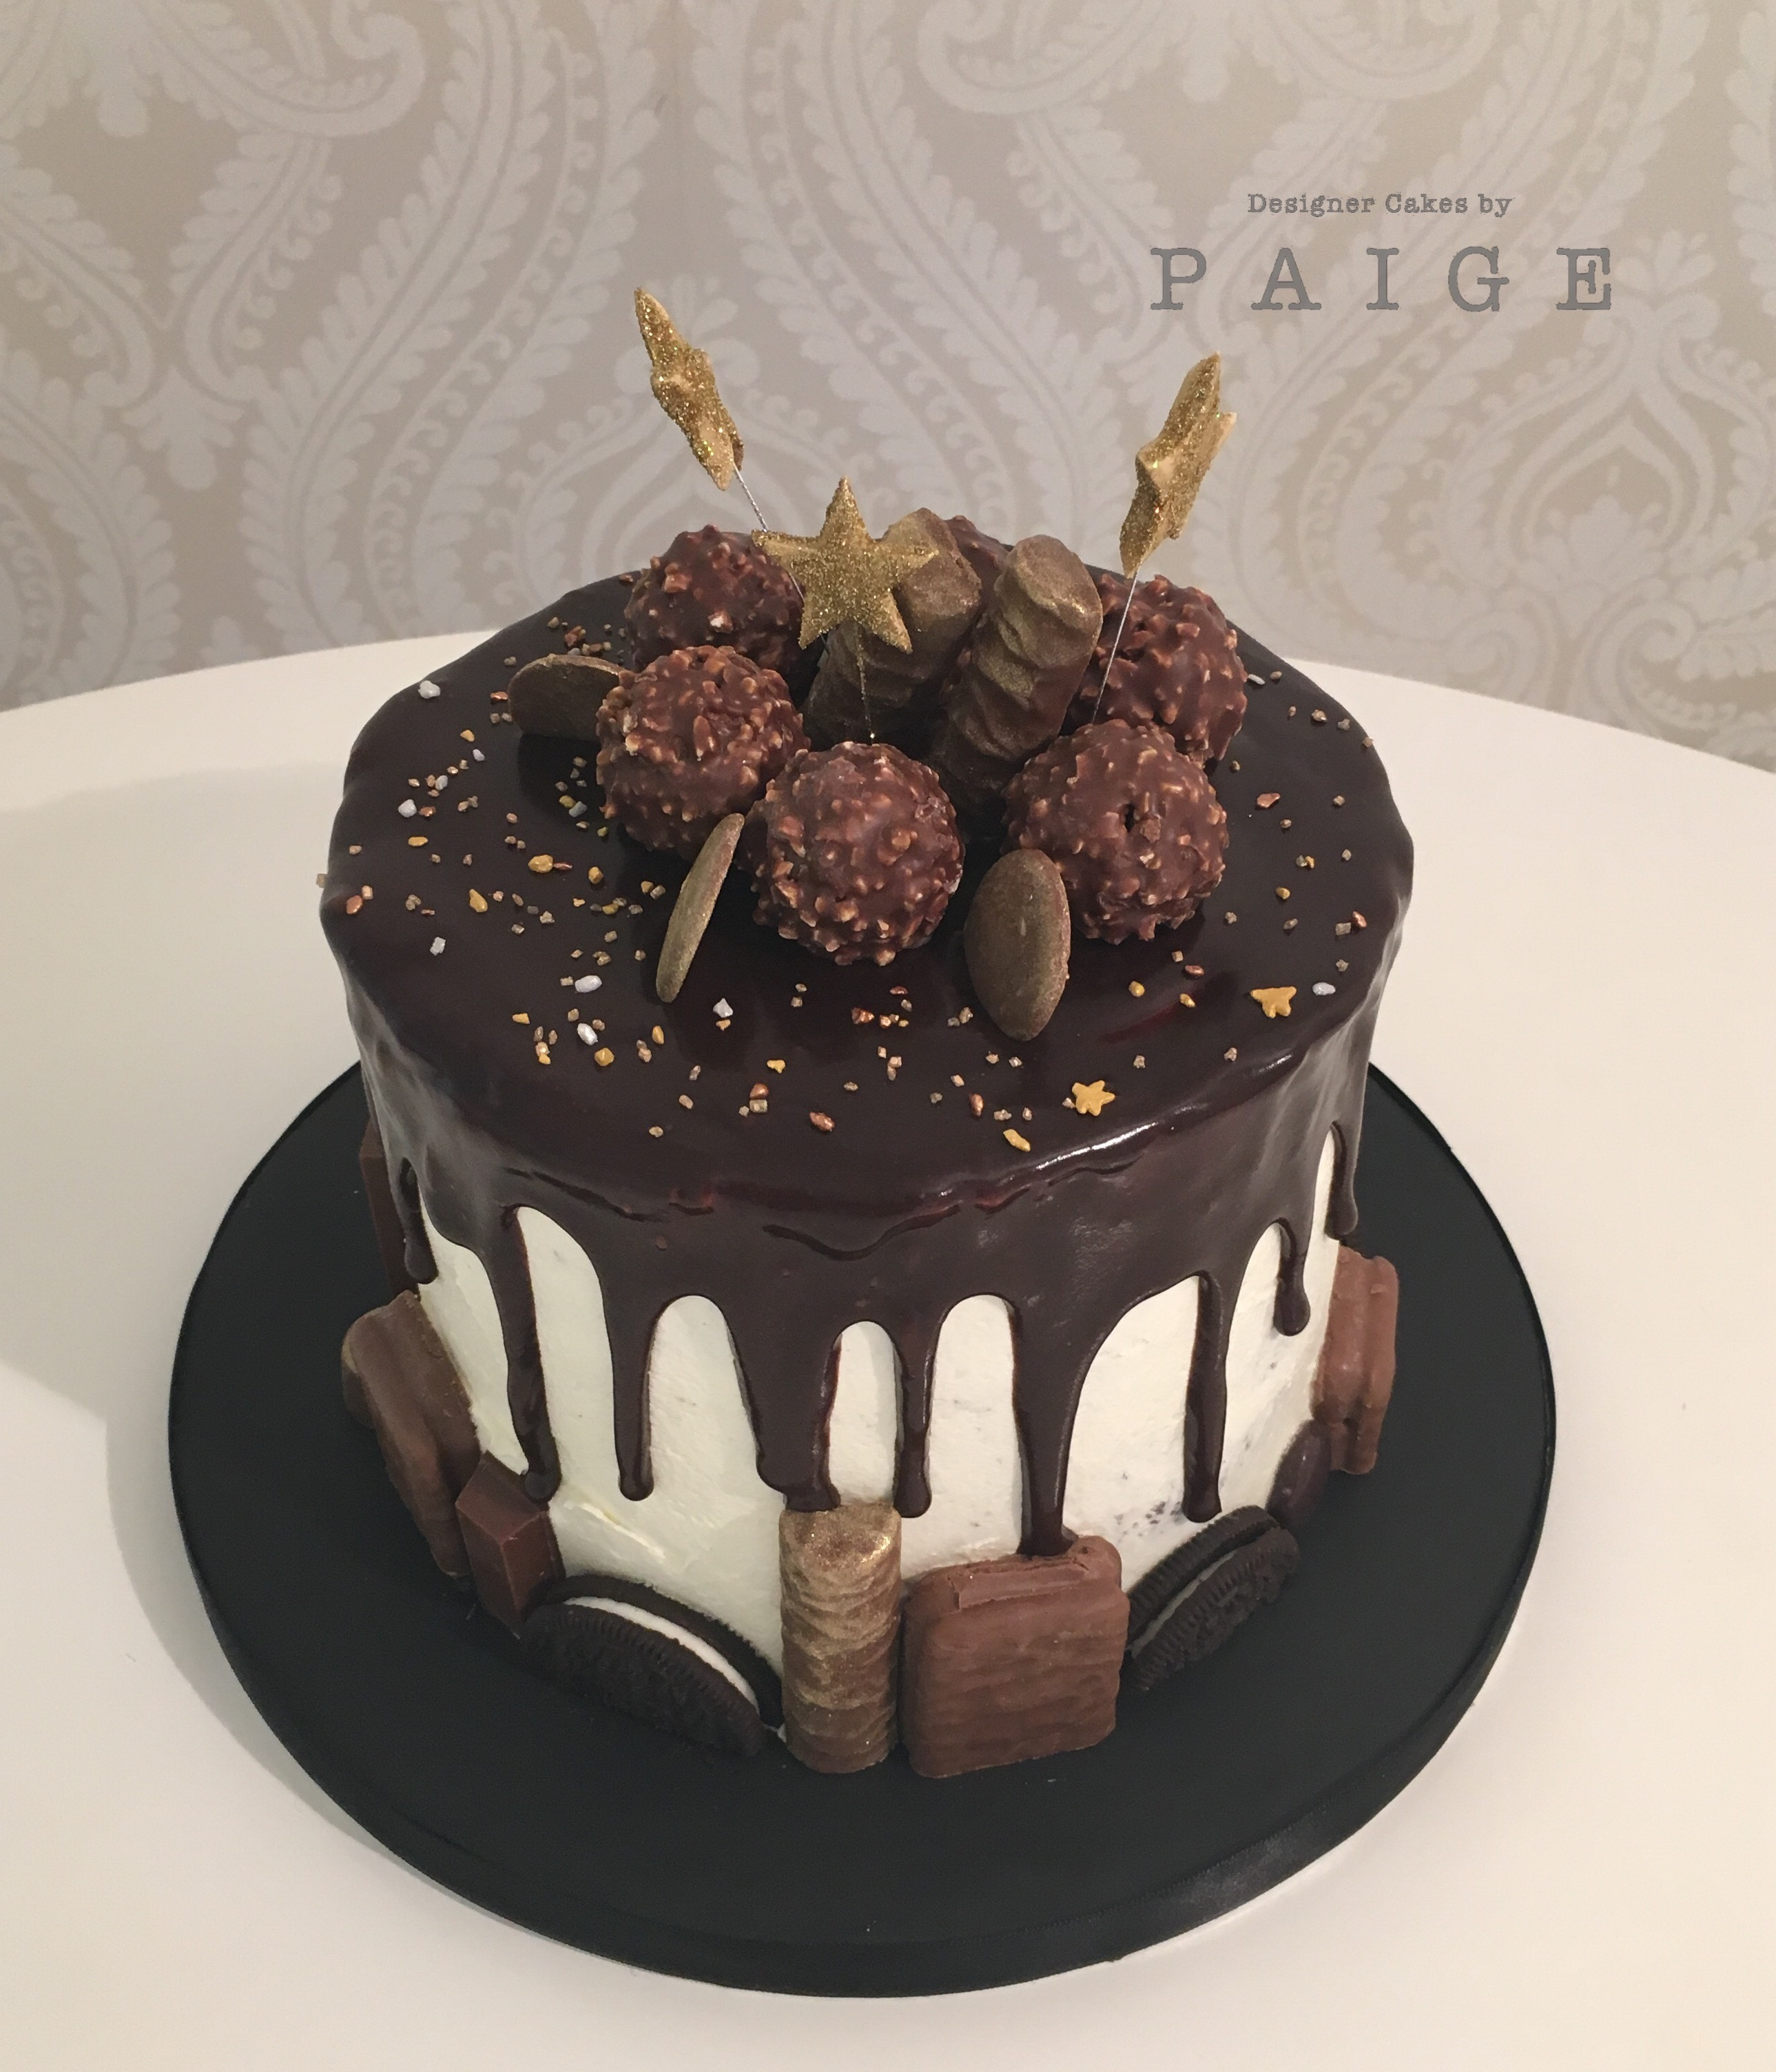 Chocolate And Gold Designer Cakes By Paige